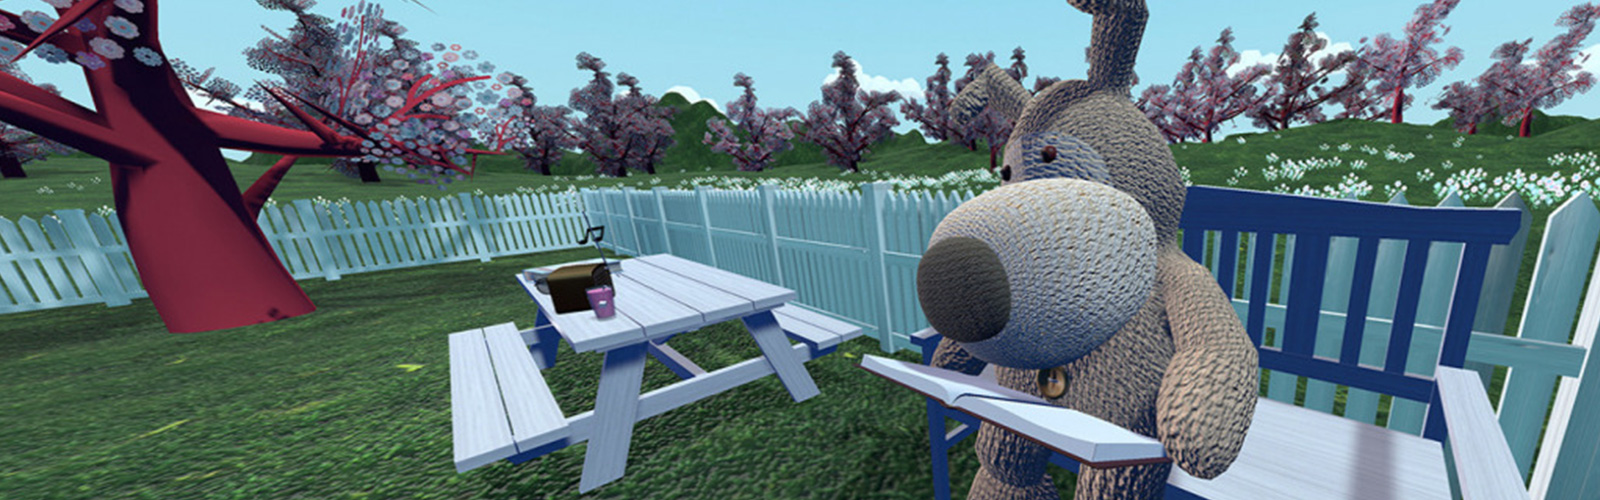 Boofle in his 3D world sat on a bench reading a book